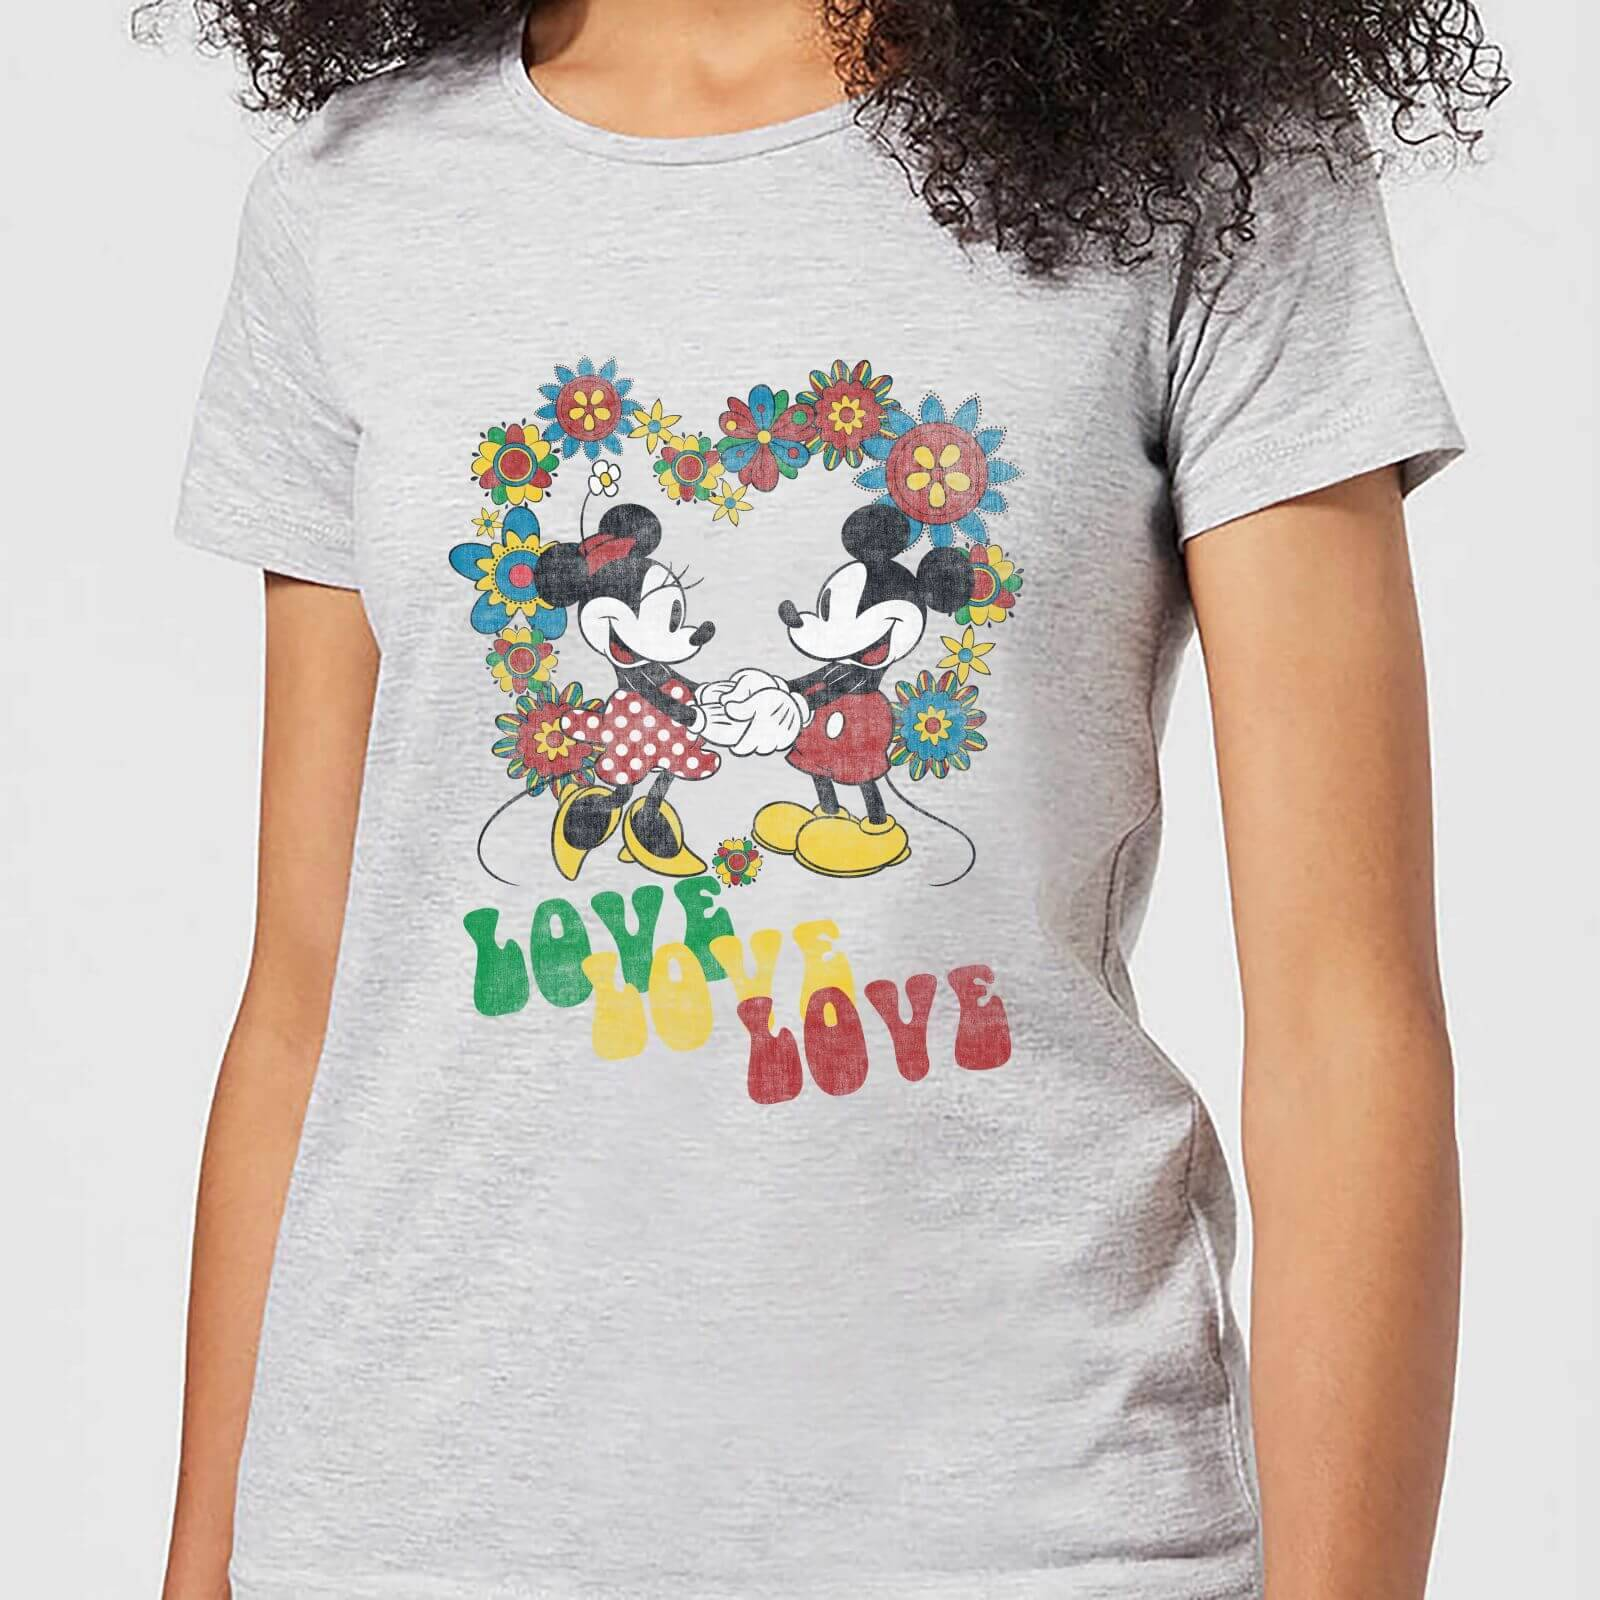 Disney Mickey Mouse Hippie Love Women's T-Shirt - Grey - XS - Grey